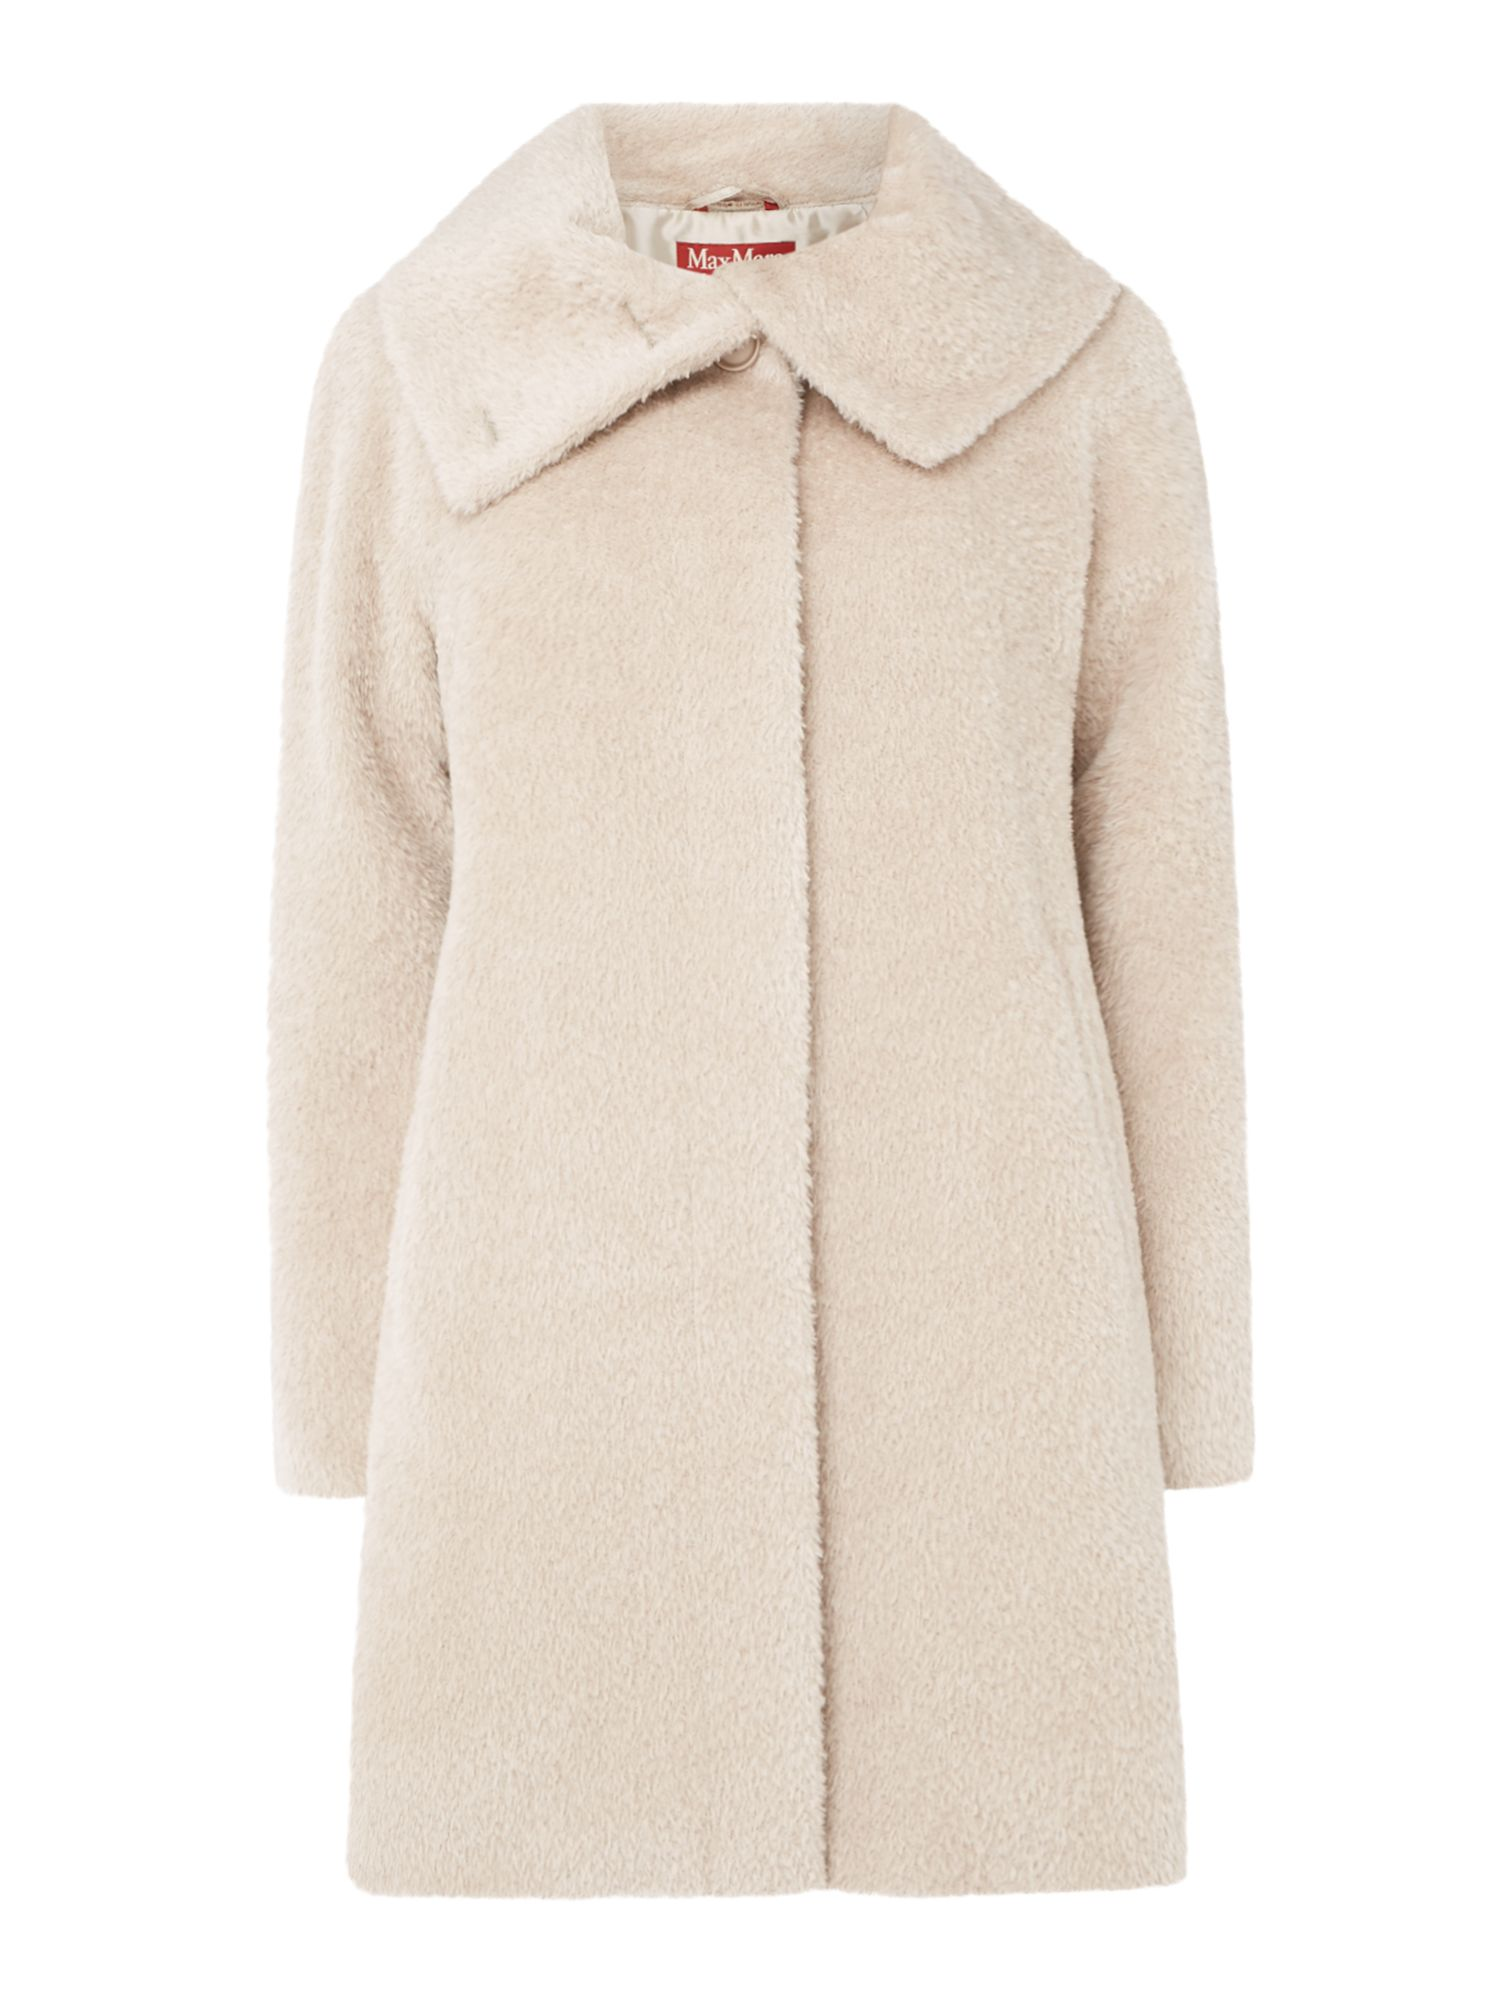 Max Mara Studio Gregory funnel neck coat, Dove